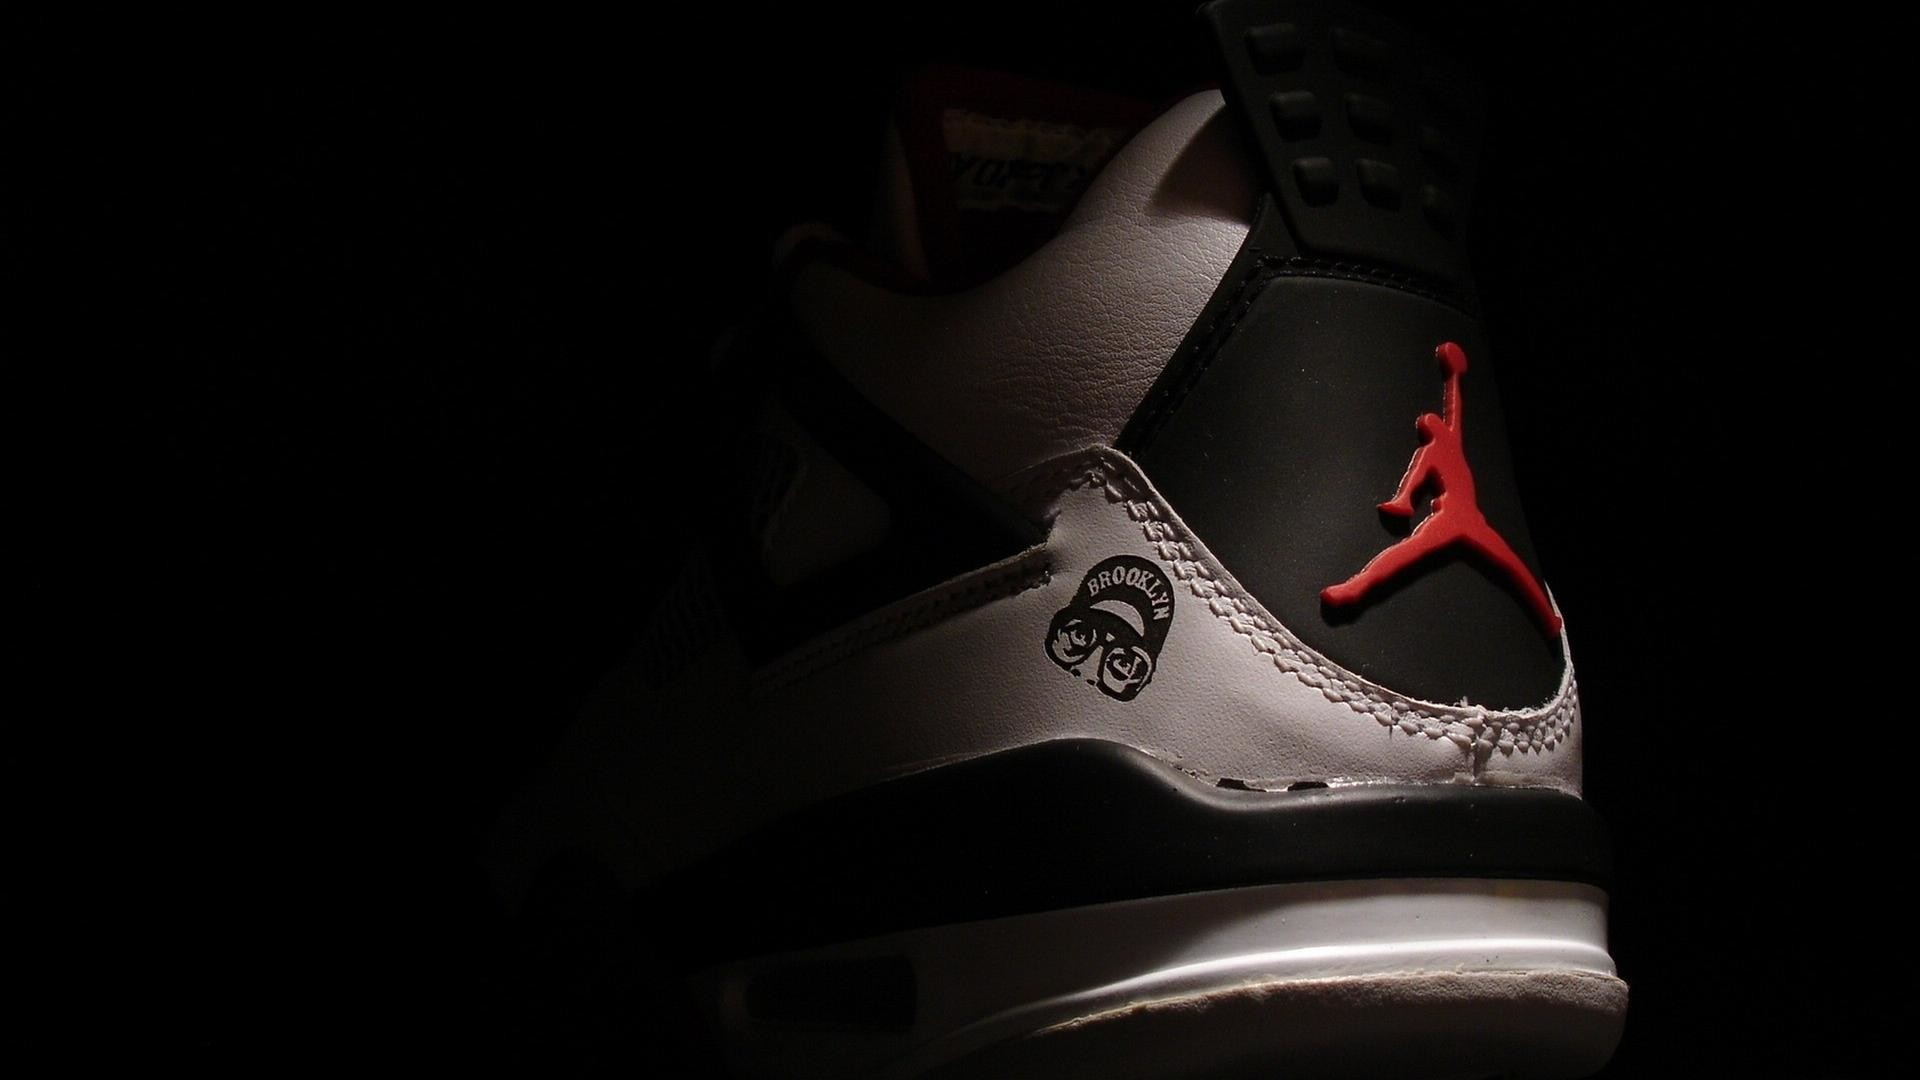 1920x1080 michael jordan wallpaper shoes. Â«Â«